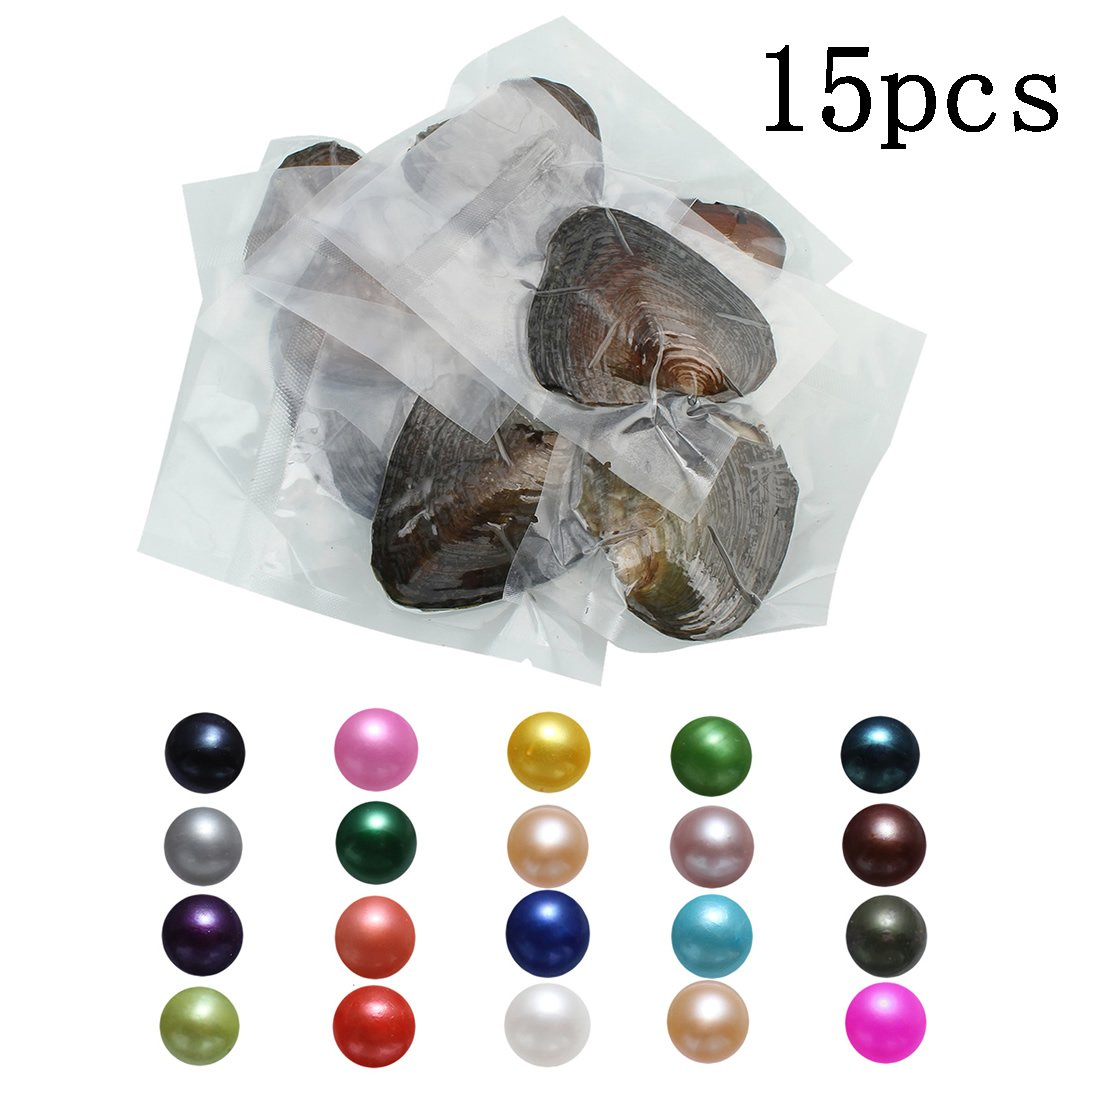 POSHOPS Freshwater Cultured Oyster with Pearl Inside Bulk Fashion Love Wish Pearl Oysters 7-8mm 15 PCS